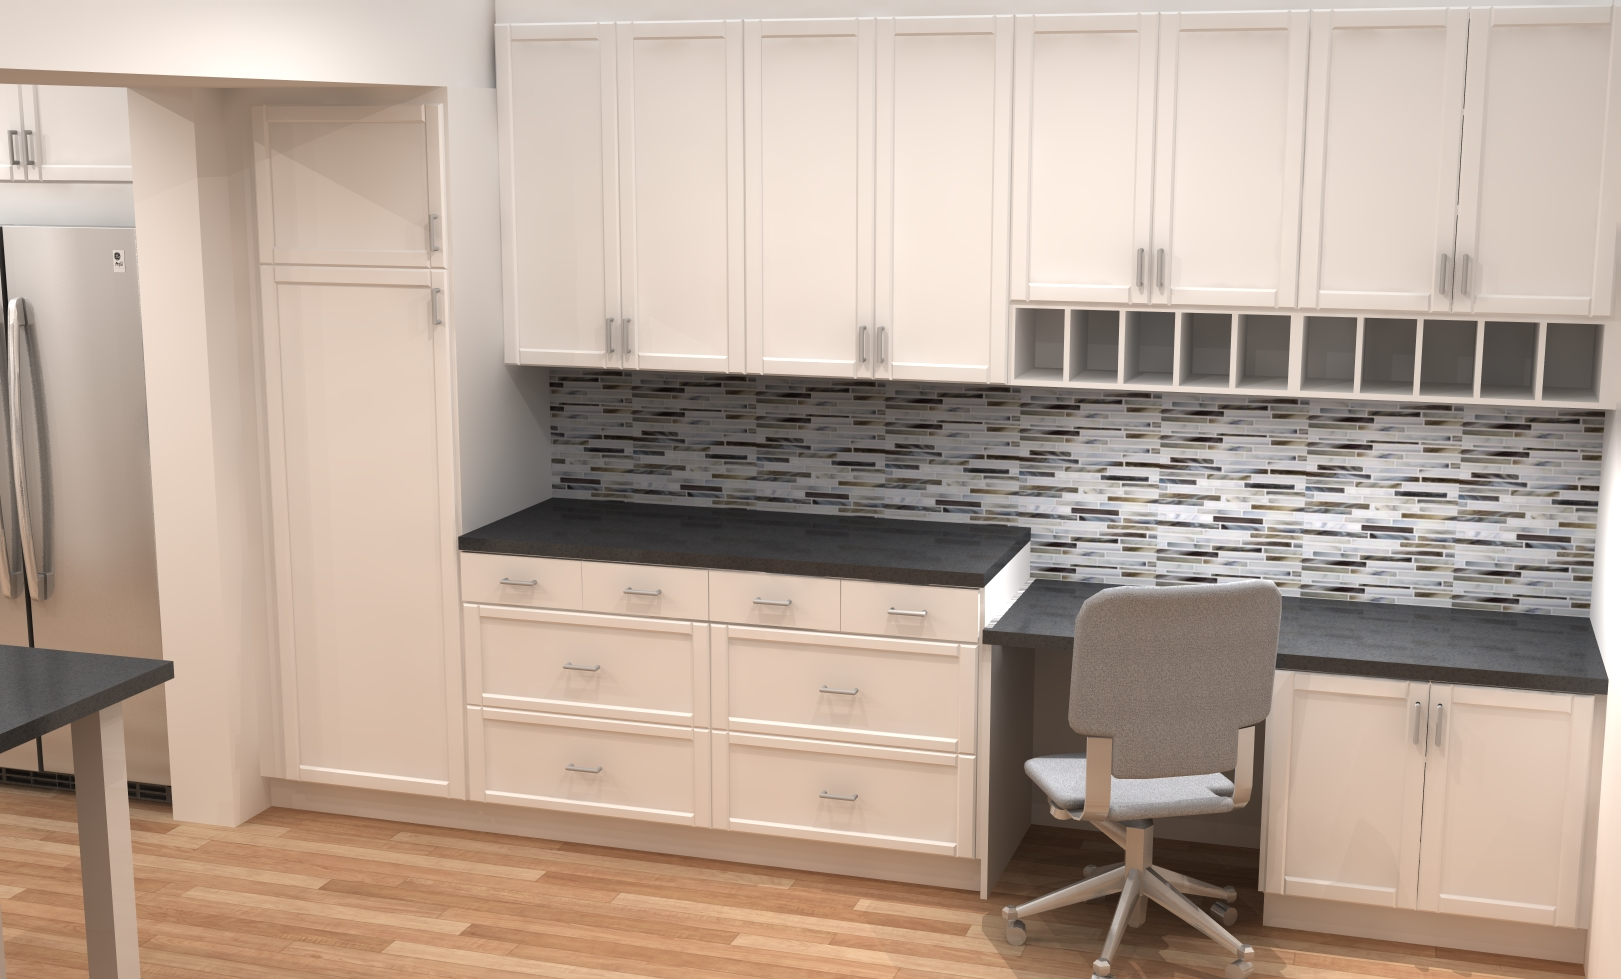 small kitchen remodel with ikea cabinets kitchen cabinets ikea Desk area in white modern ADEL shaker IKEA kitchen